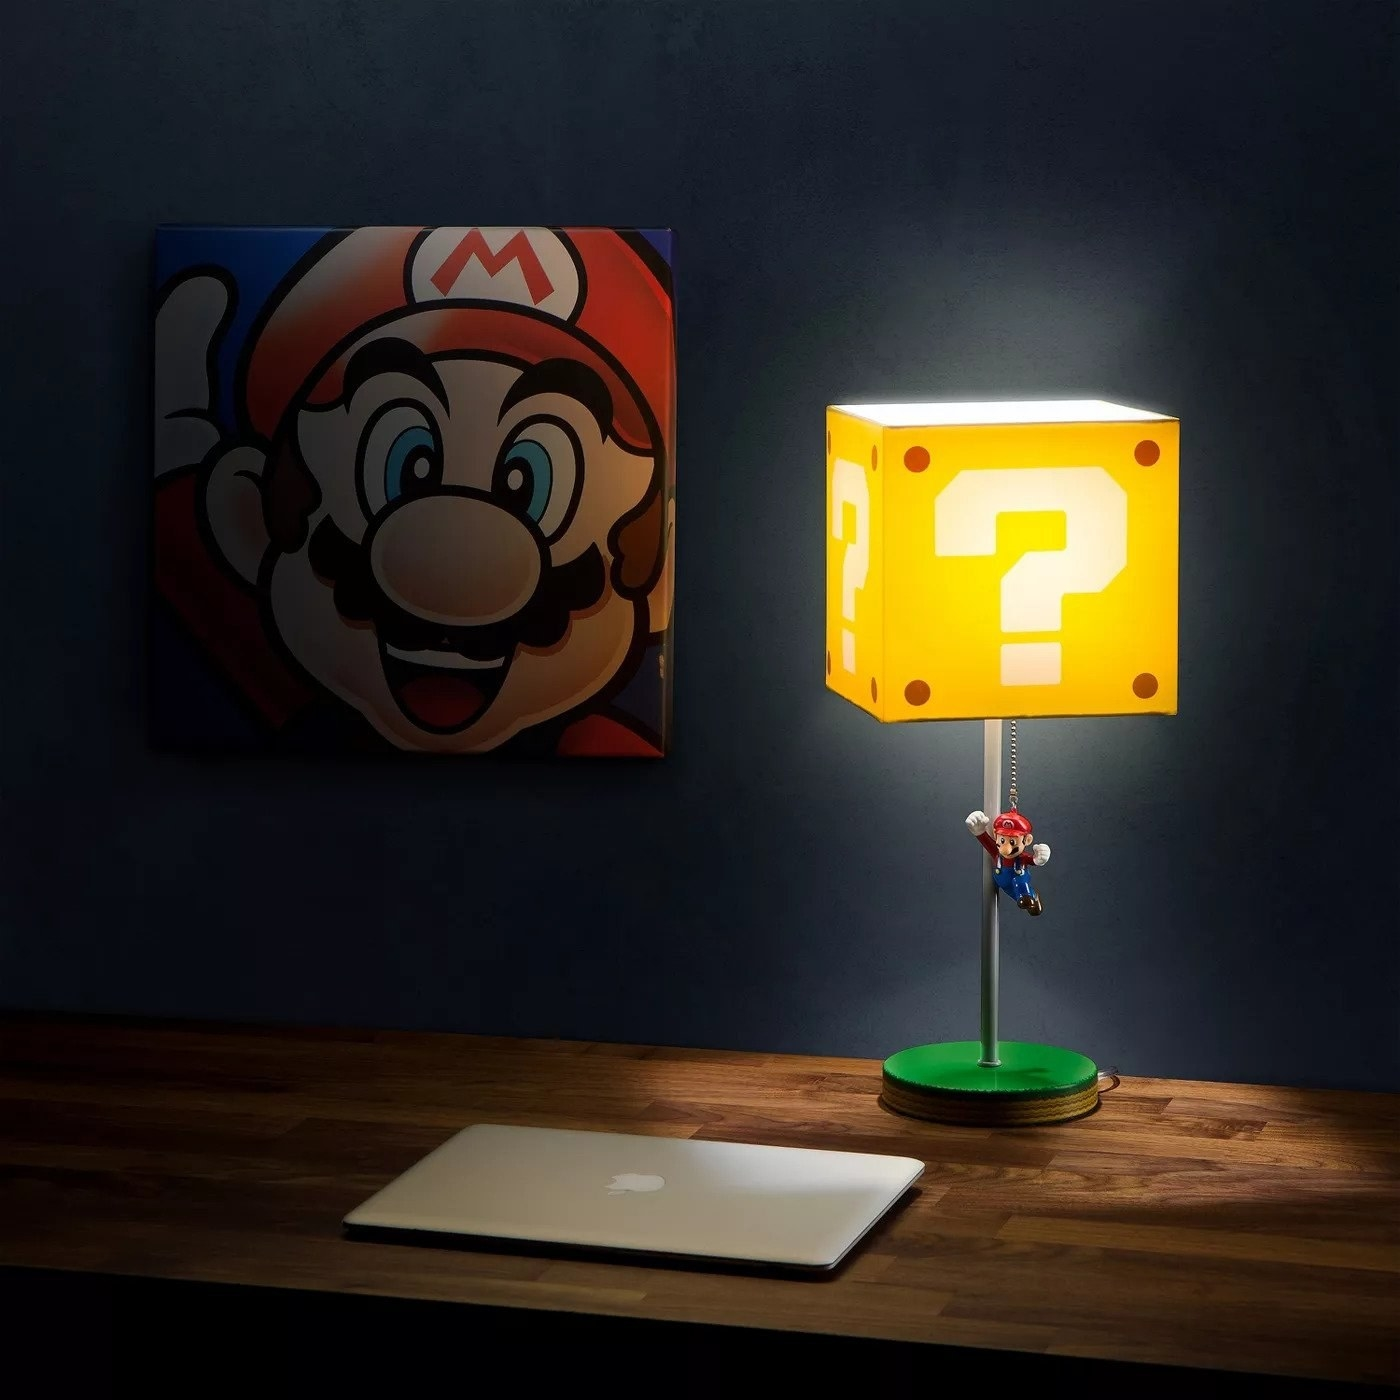 lamp with a yellow question box shade and a chain with a mario figure on the ned